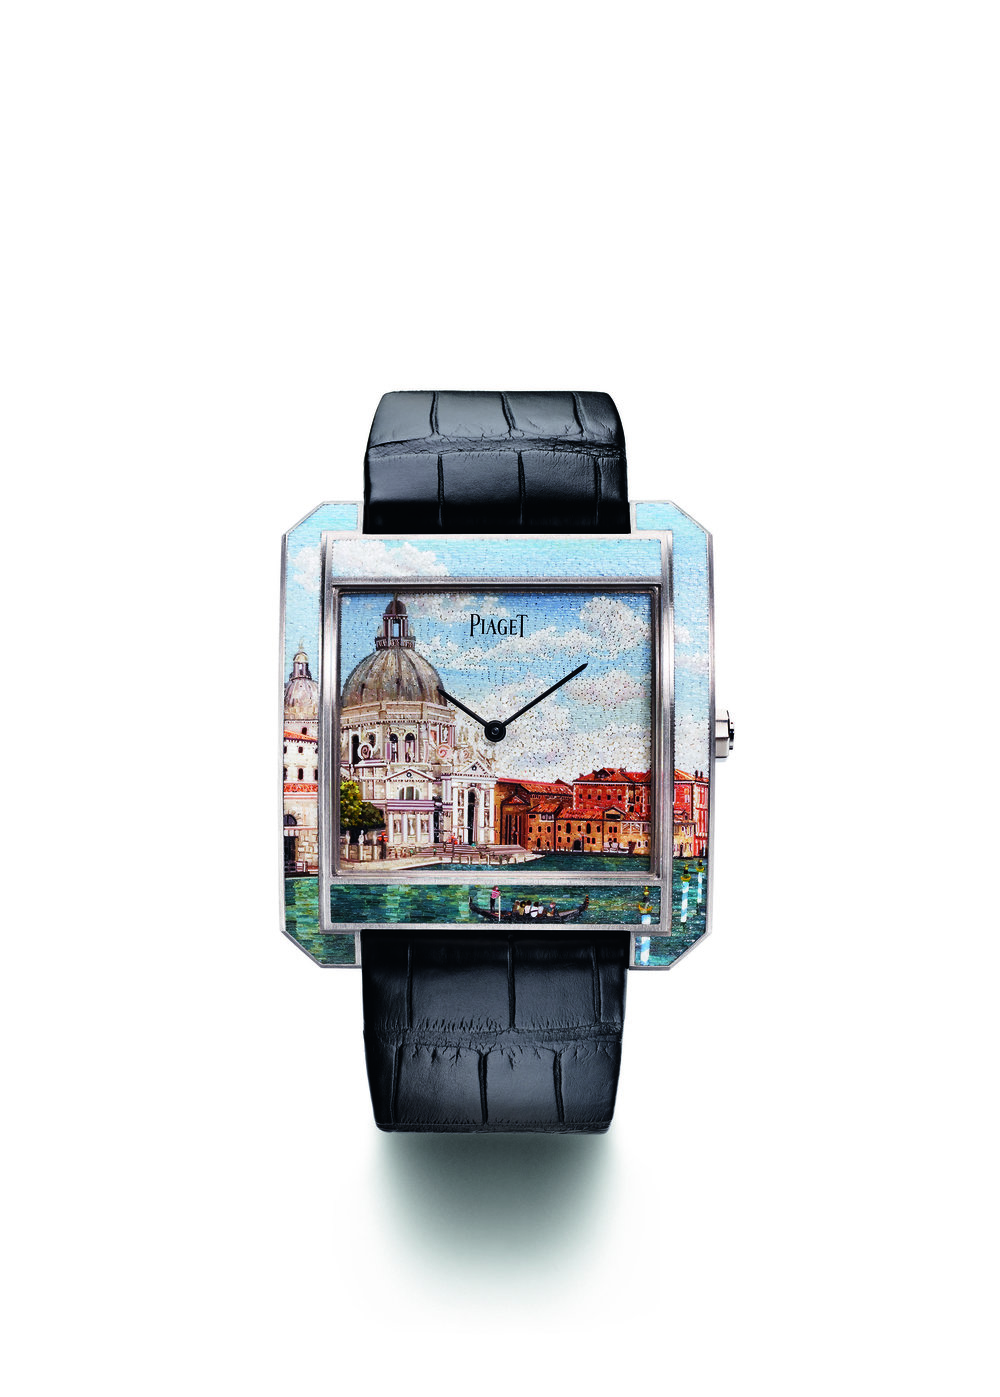 Artistic Crafts Watch Prize: